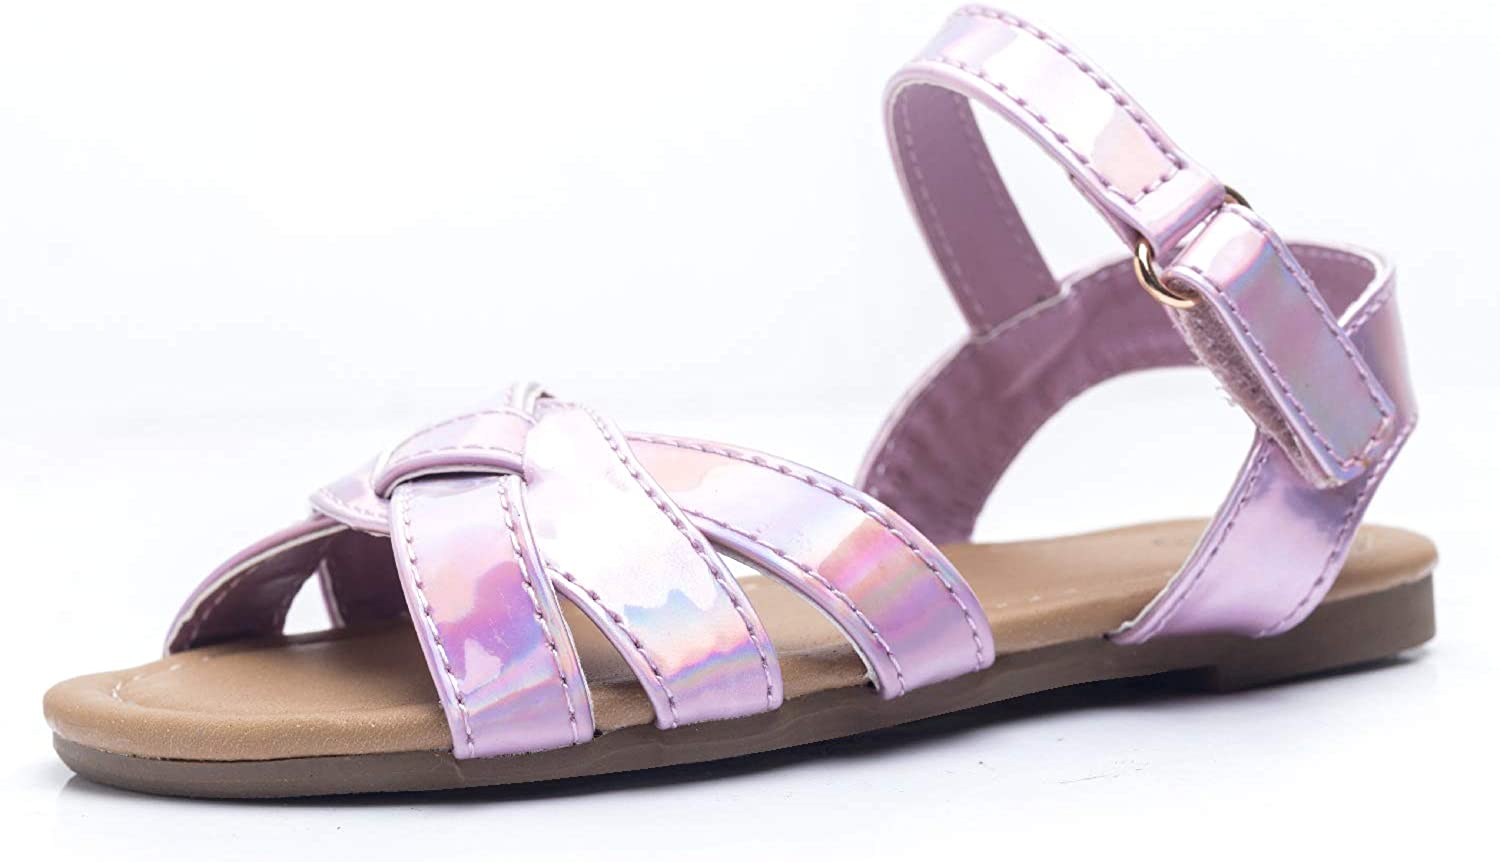 FITORY Girls Sandals, Flat Toddler